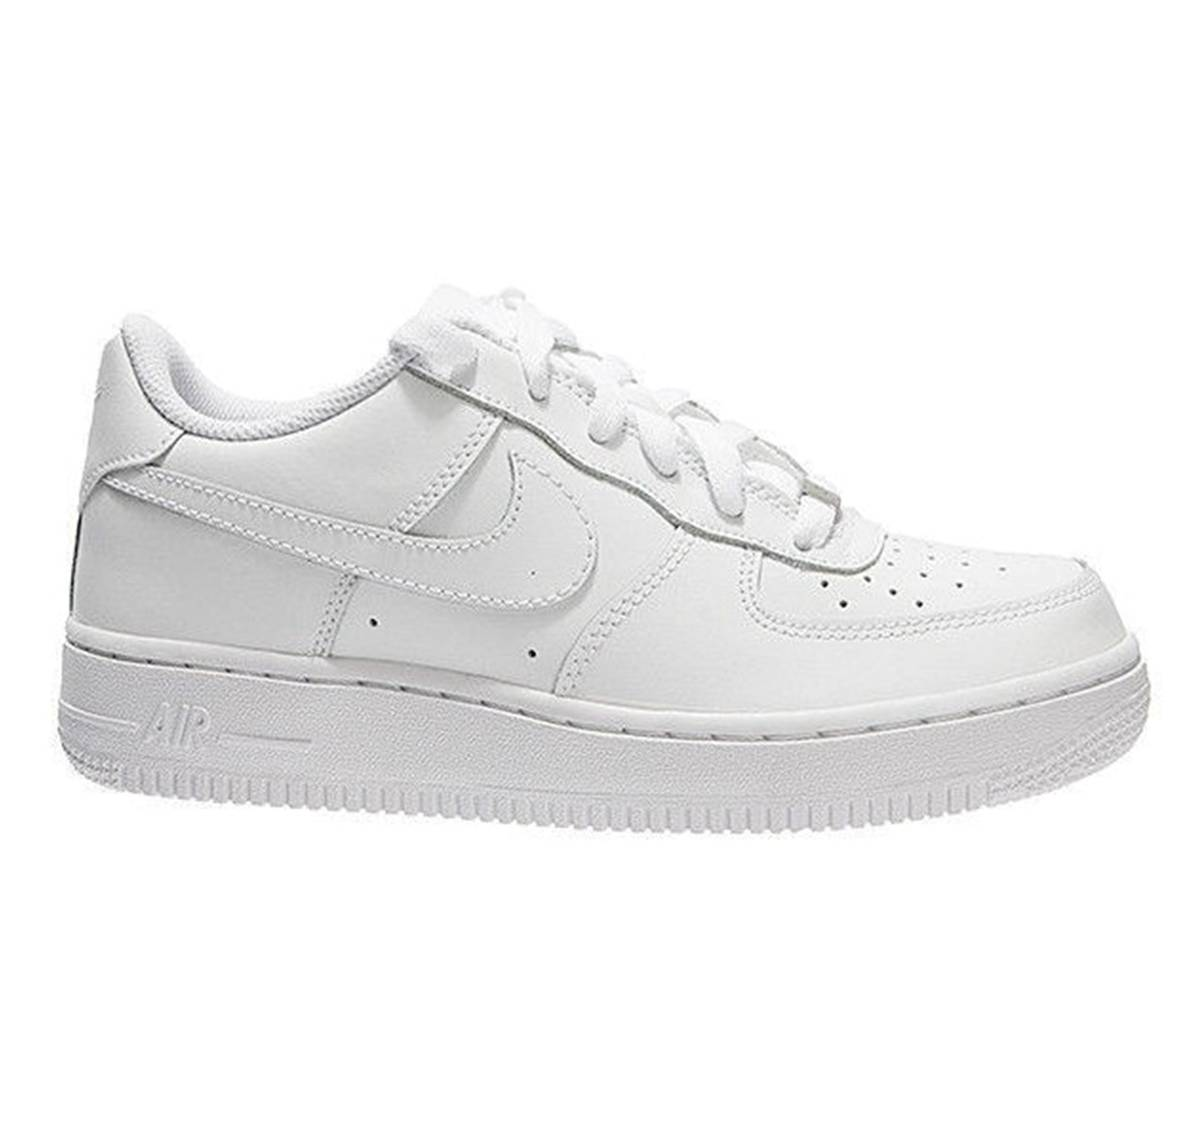 los angeles 42e8e 091f3 Nike Air Force 1 Kids  White   Sports and Games Ltd.